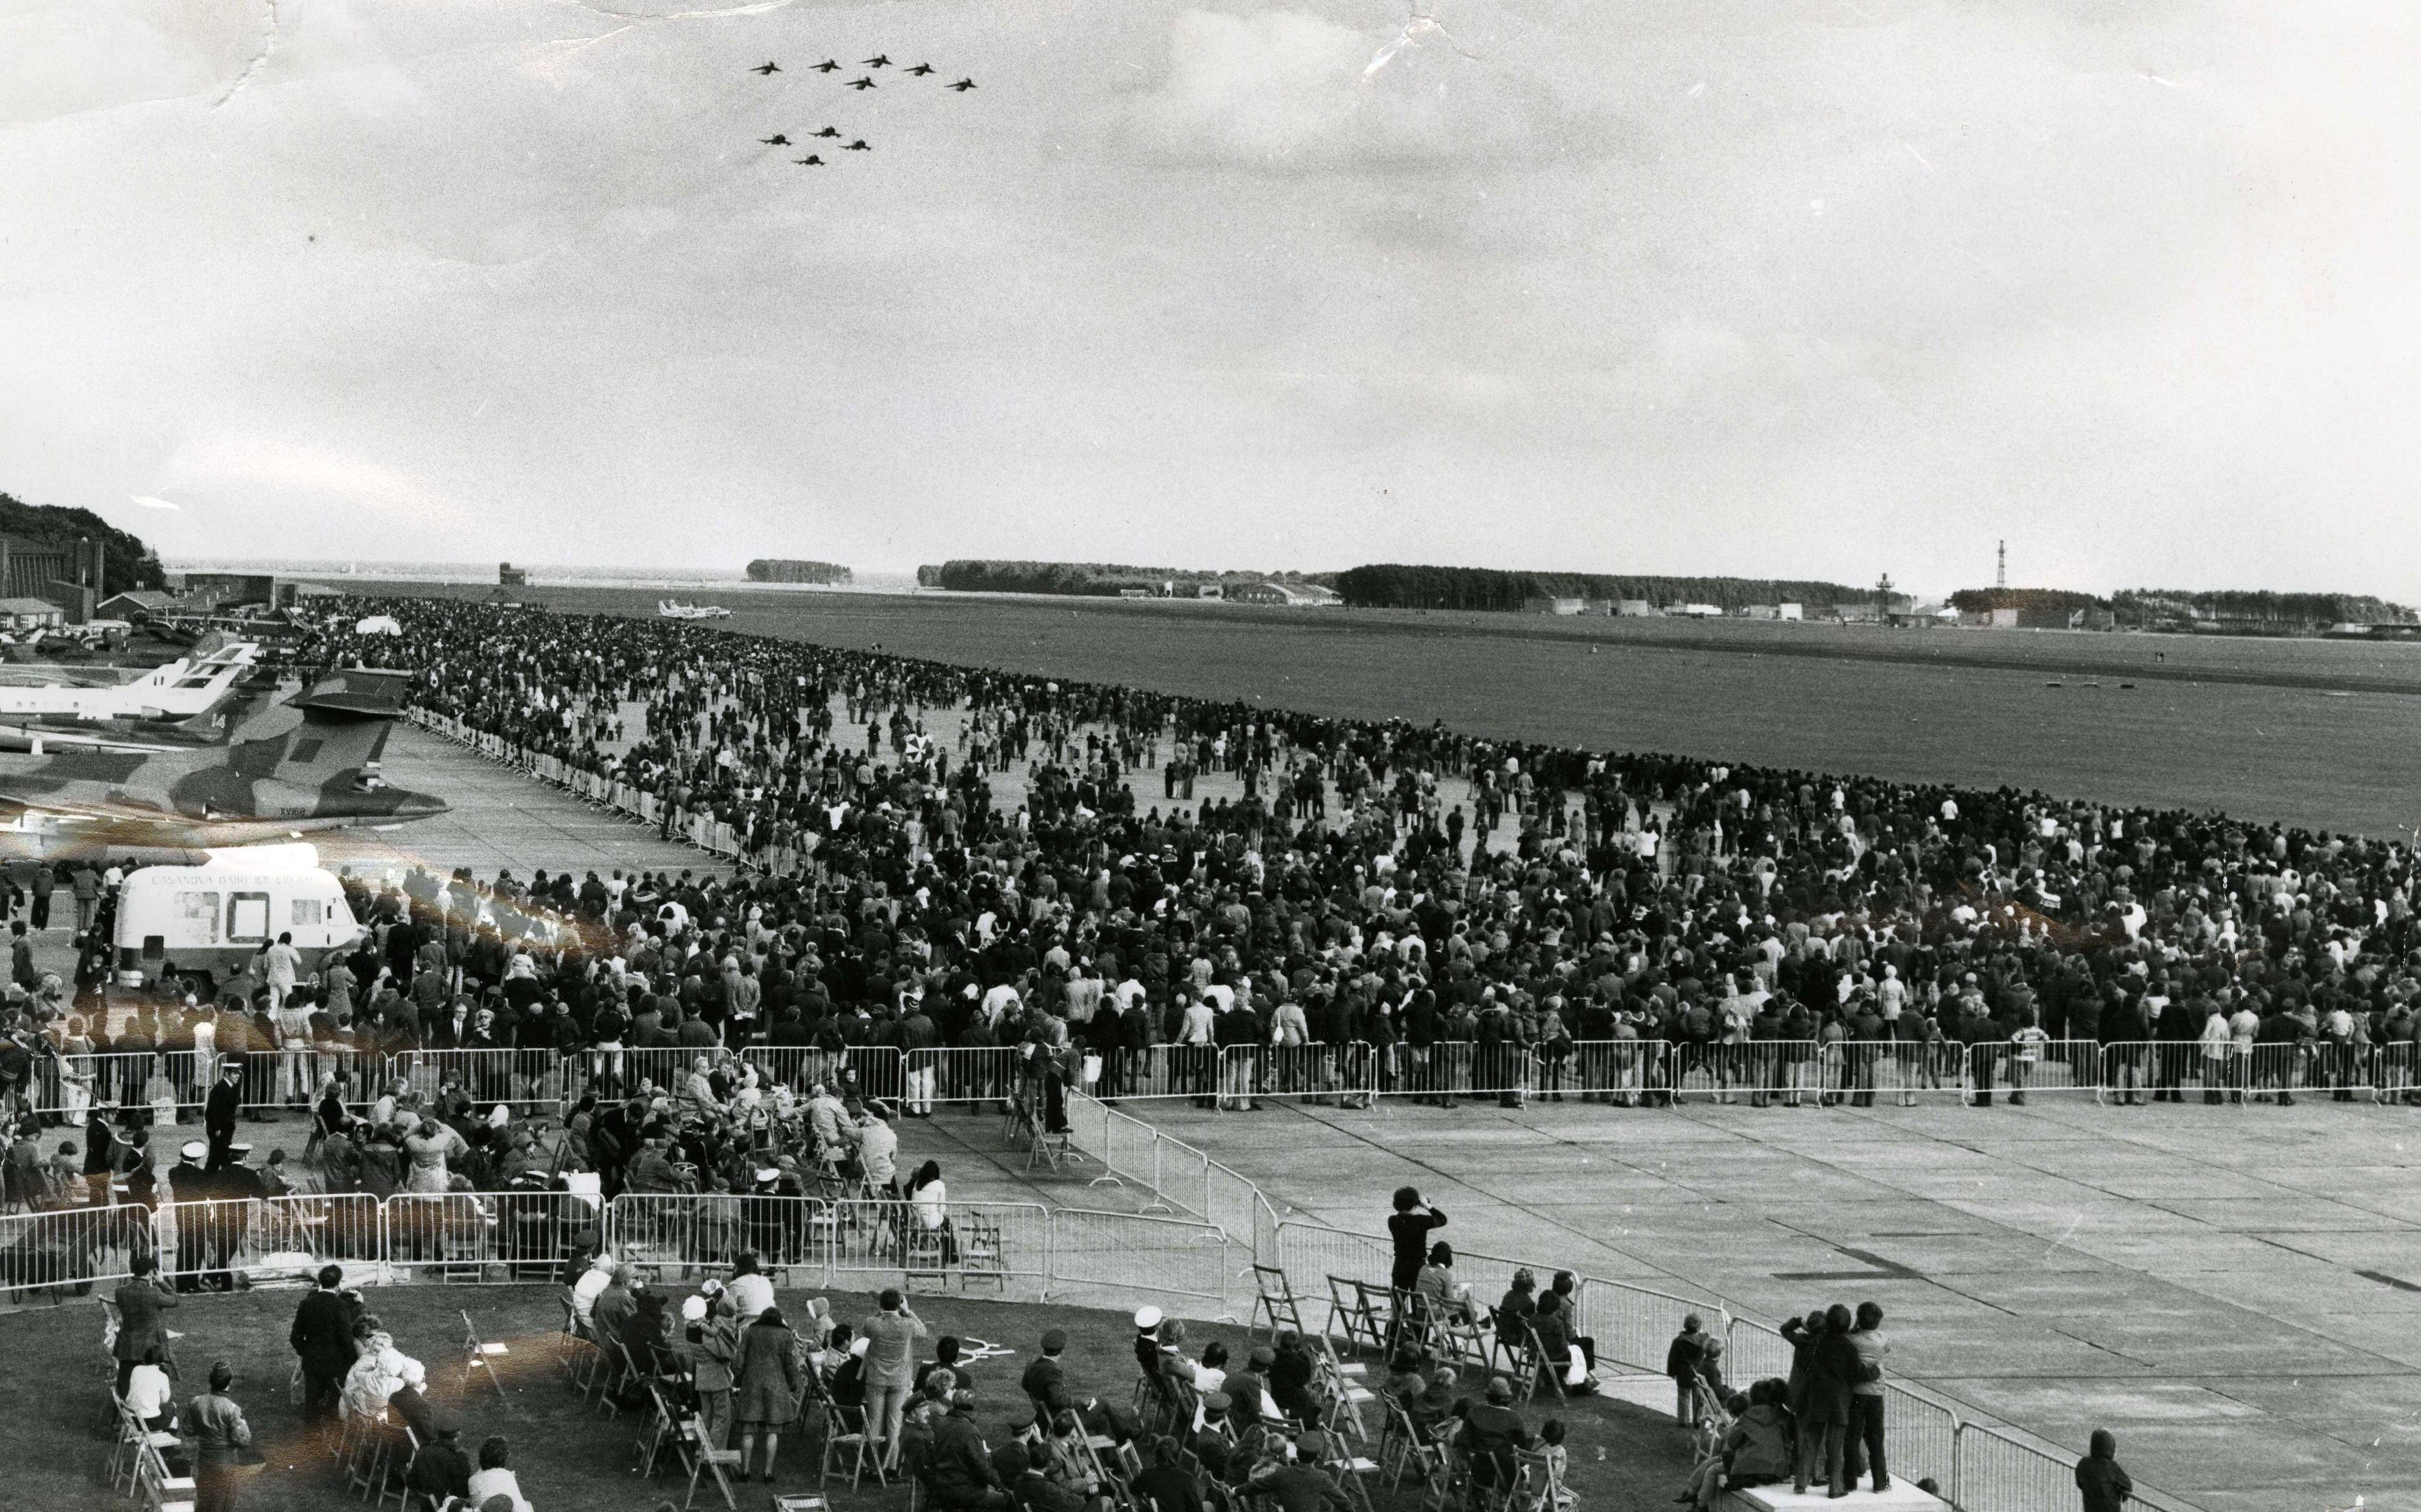 """The 23 Squadron and Phantoms of the 23 Squadron """"flypast"""" the large crowds at RAF Leuchars air show.  20 September 1975."""